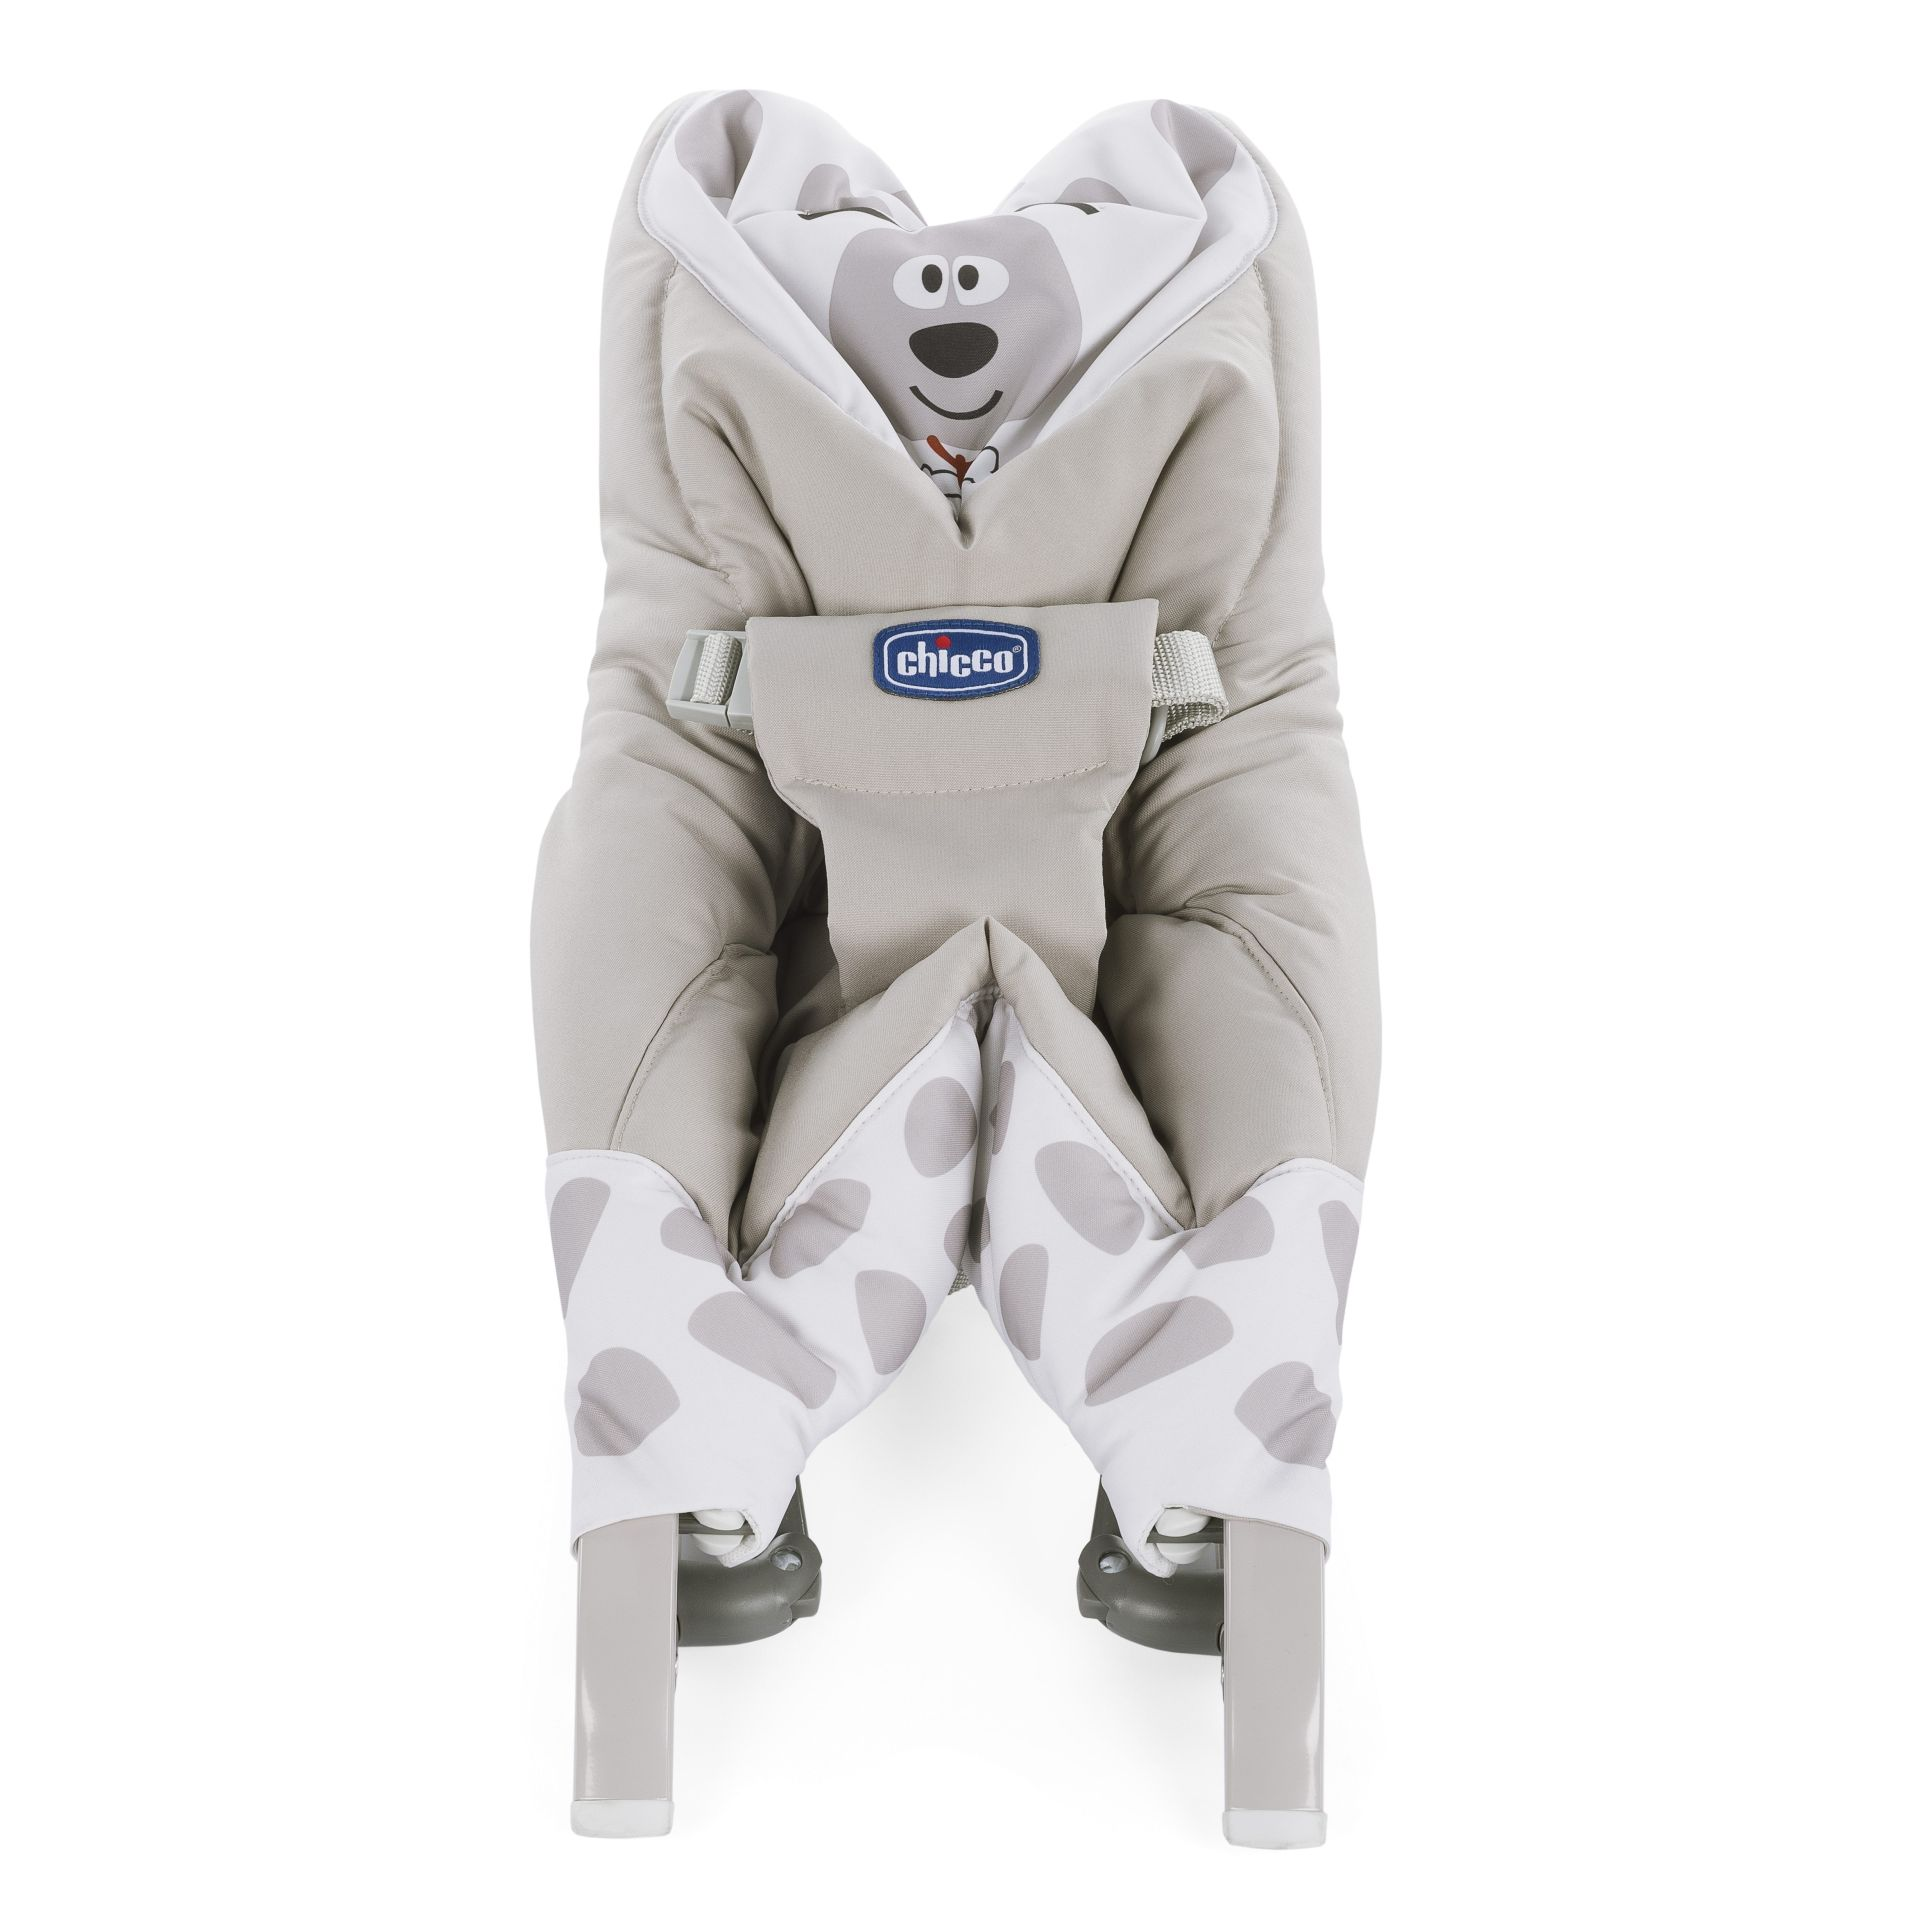 Chicco Baby Bouncer Pocket Relax Buy At Kidsroom